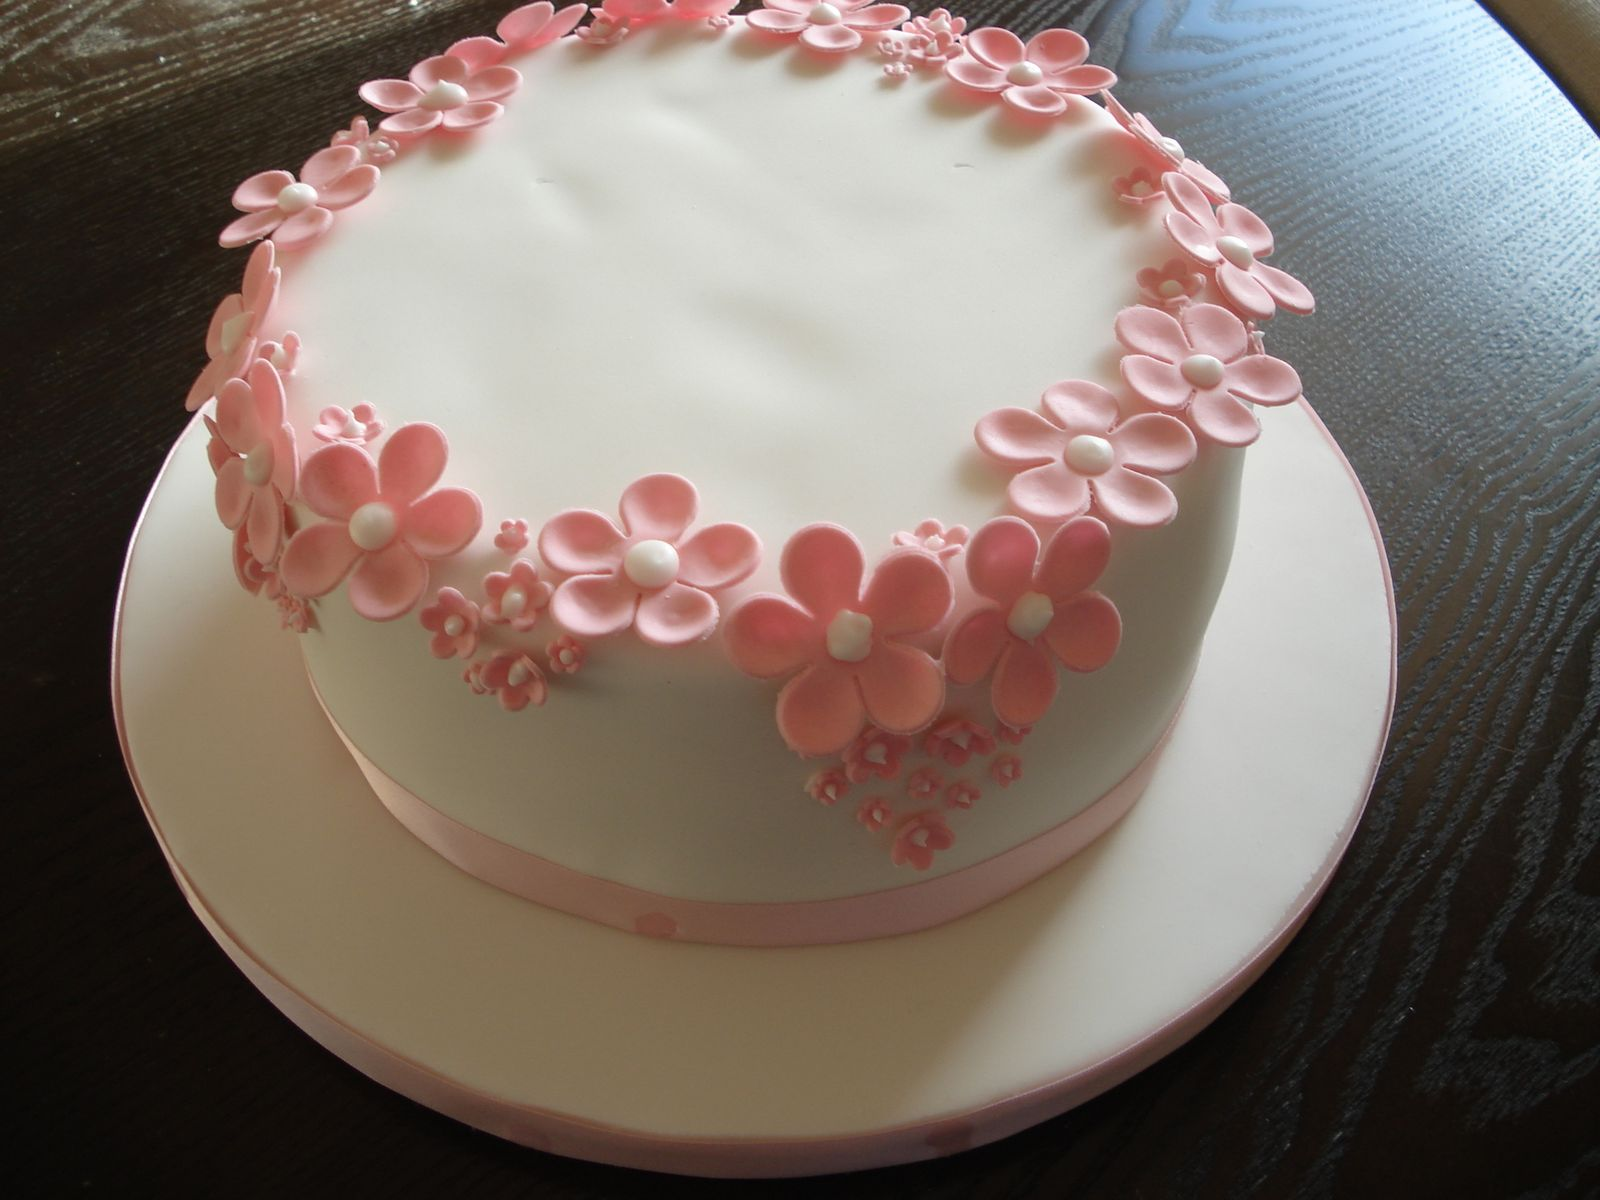 Flower Birthday Cake For Girl Image Inspiration of Cake and